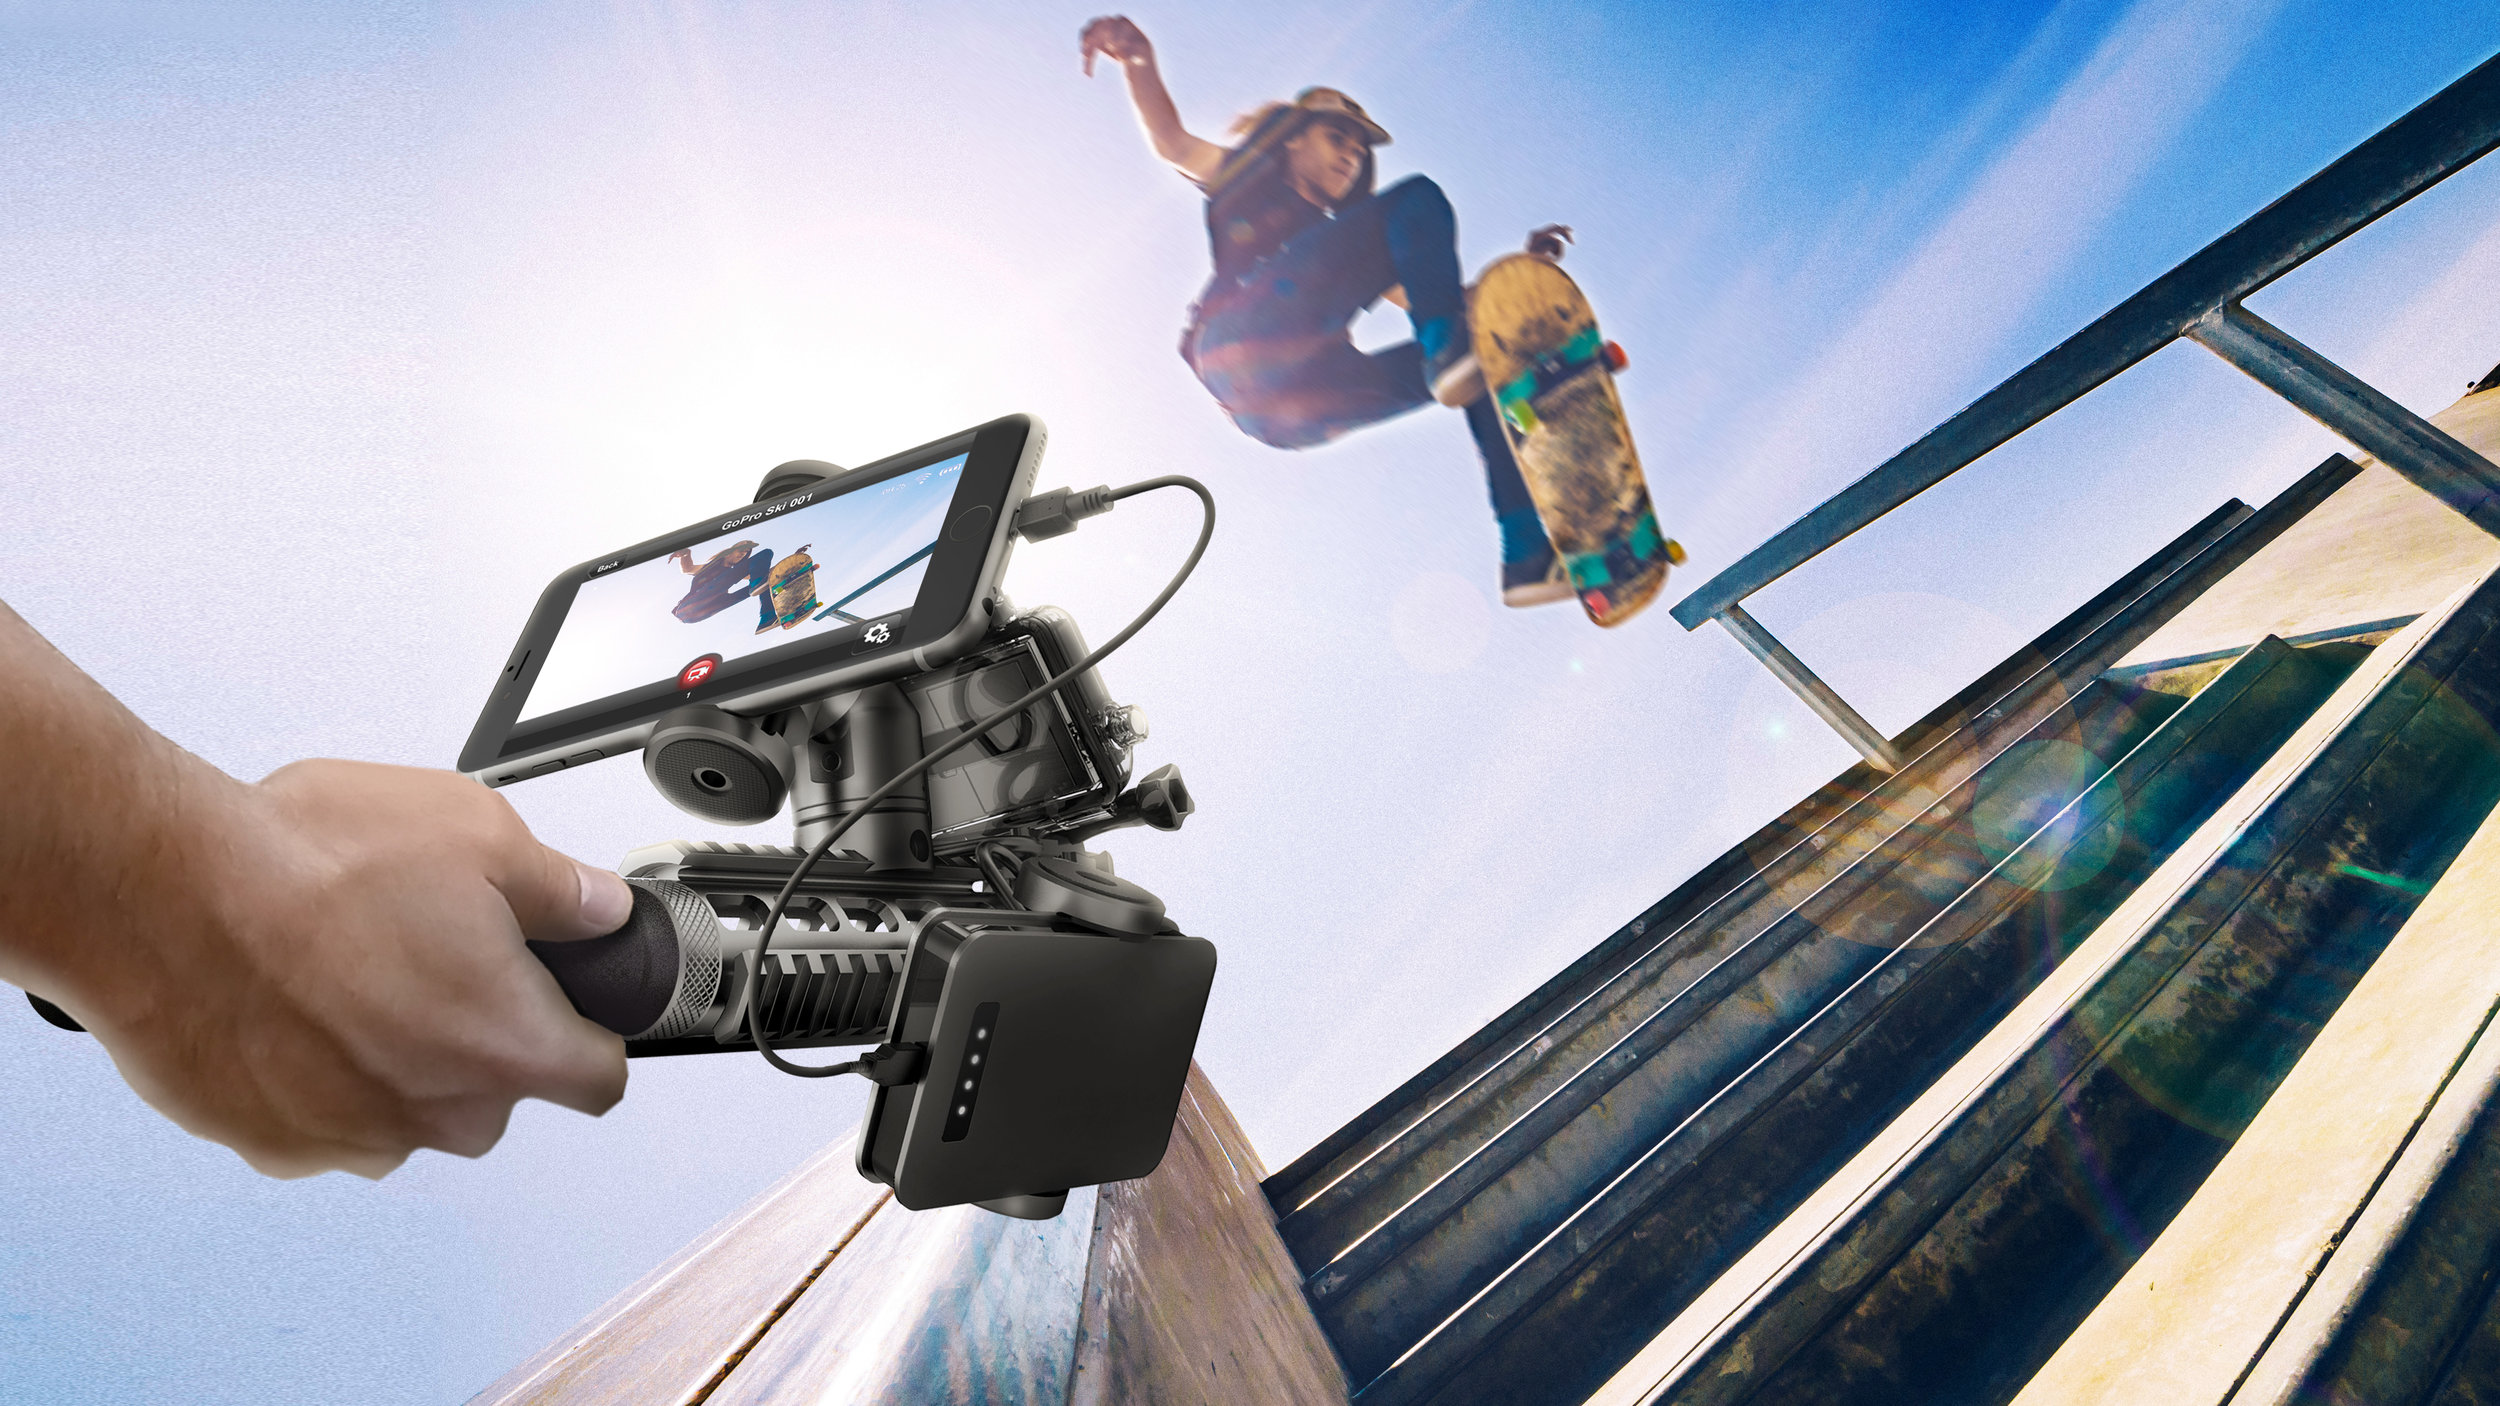 Picatinny Miniature Tripod becomes hand held rig to shoot live action